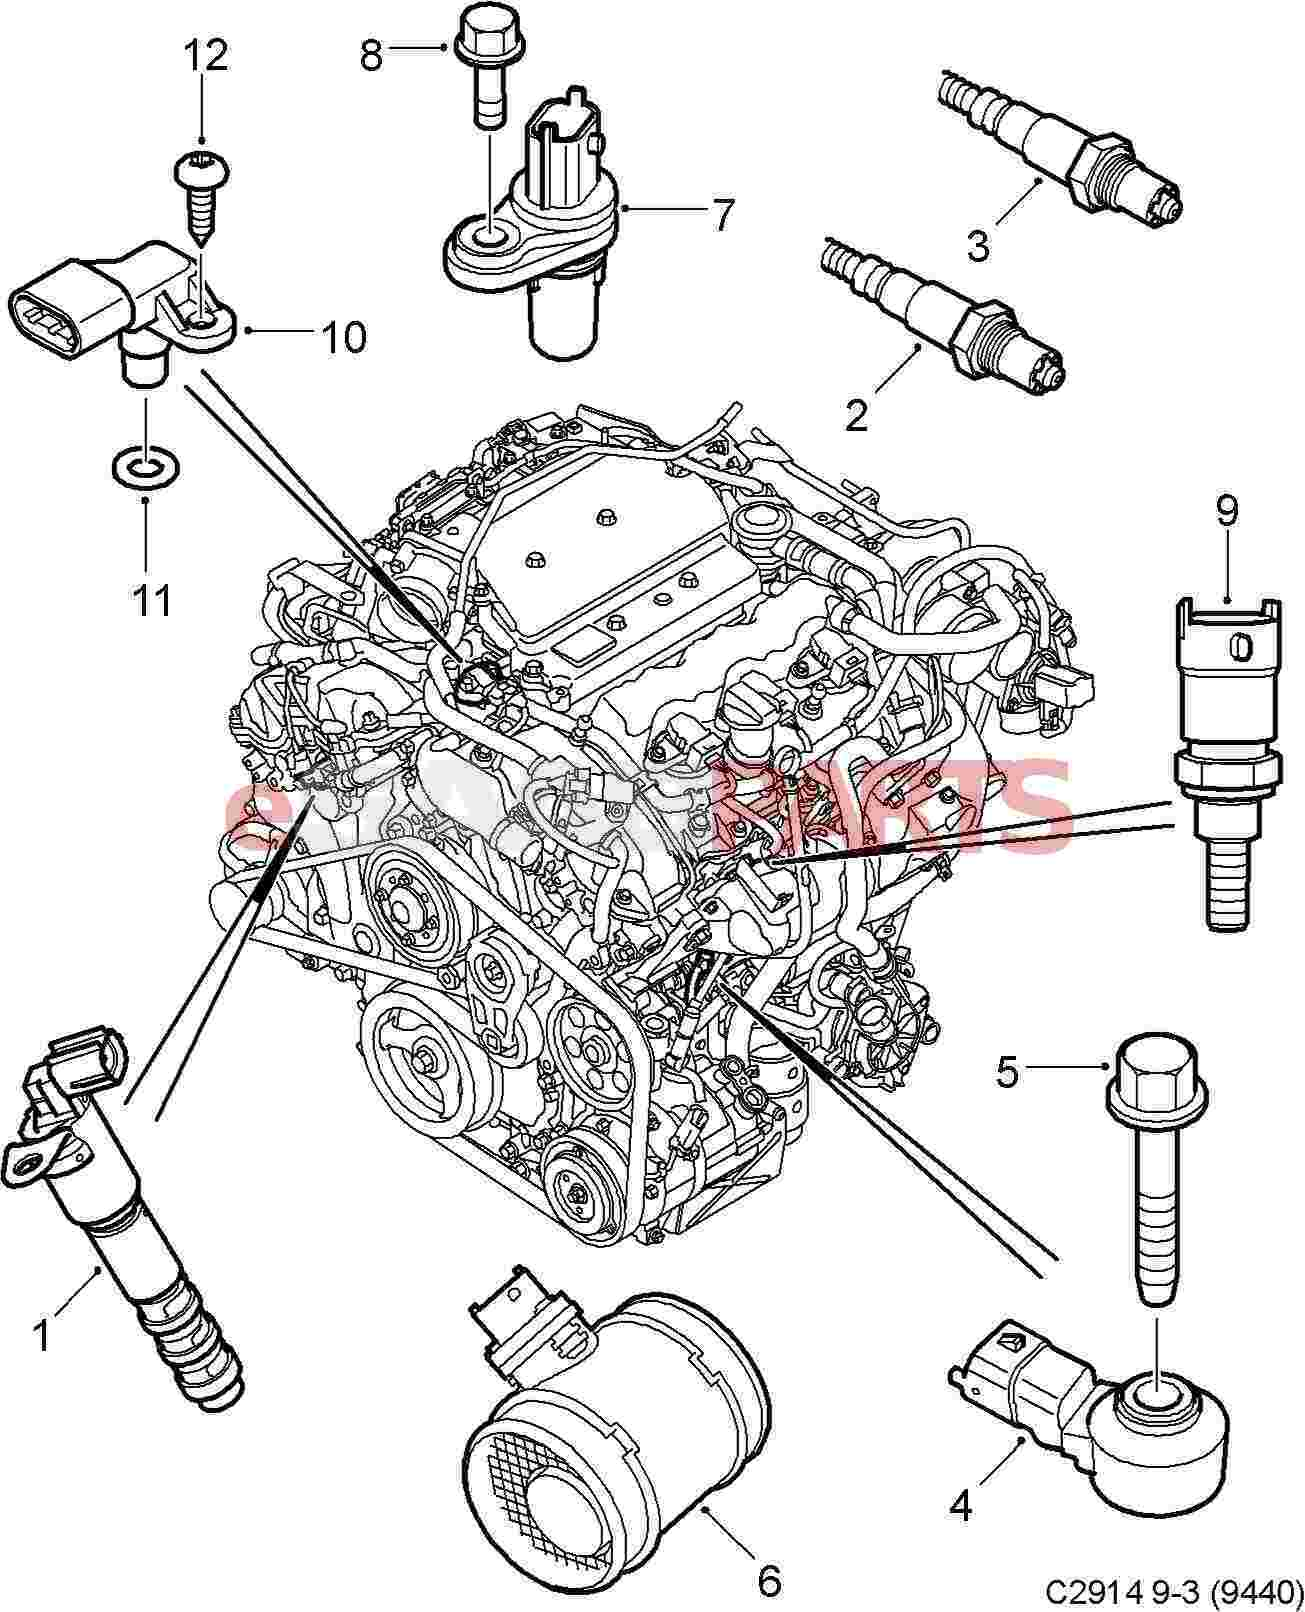 3 1 V6 Engine Diagram Sensors